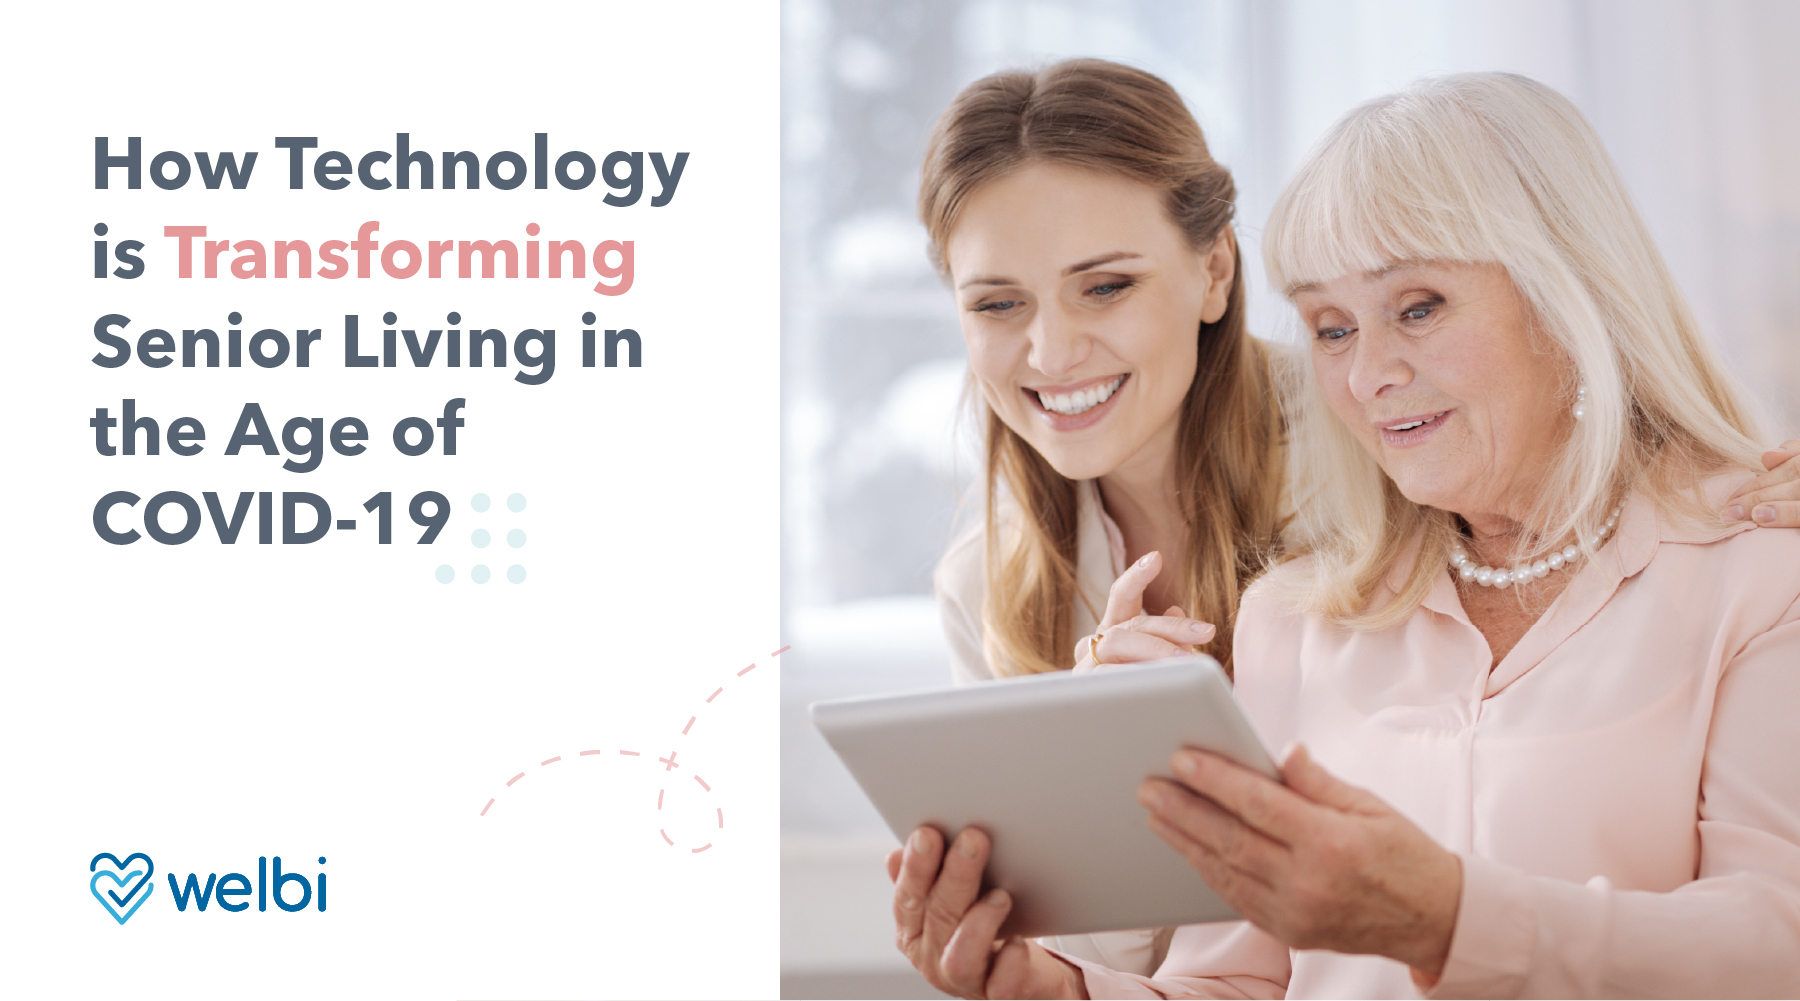 How Technology is Transforming Senior Living in the Age of COVID-19